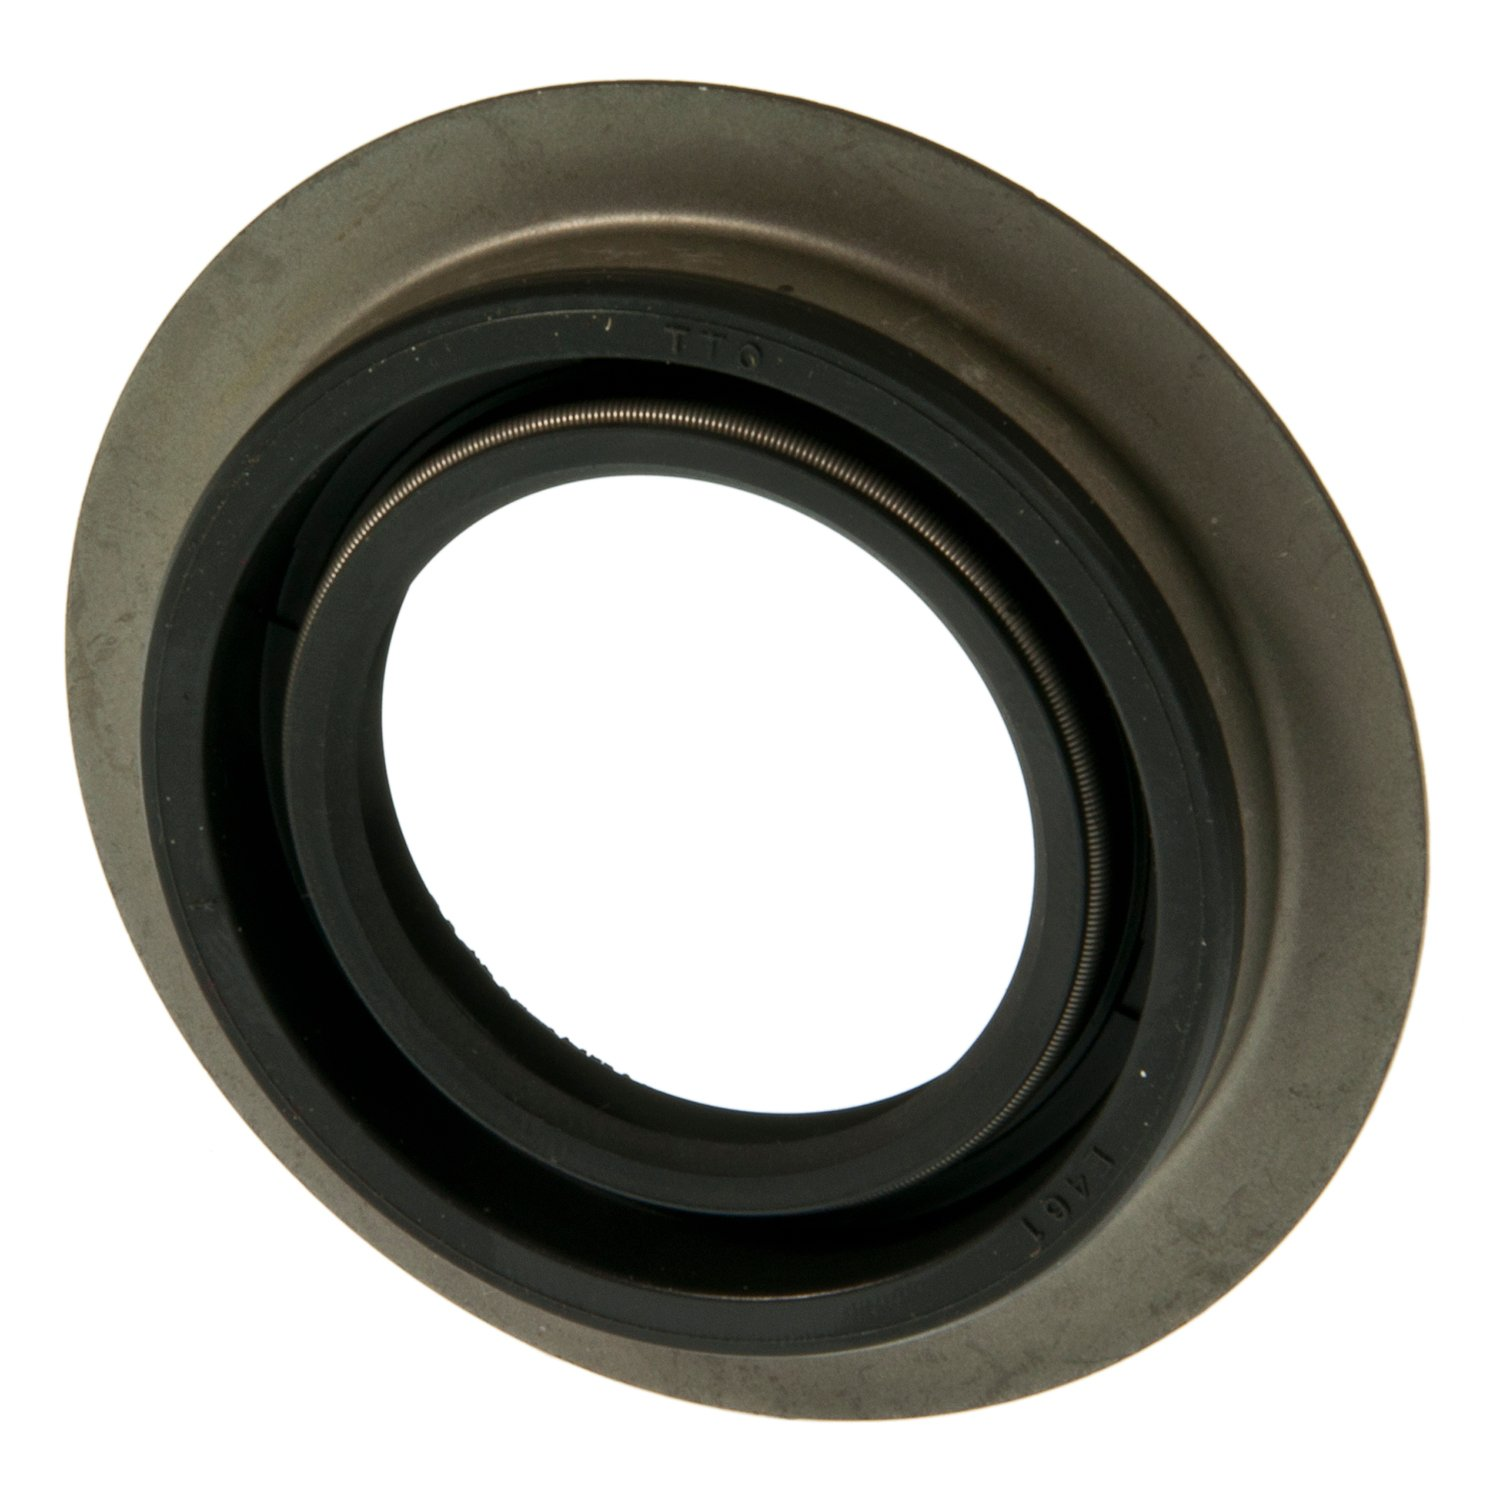 2010 Acura TSX Automatic Transmission Output Shaft Seal